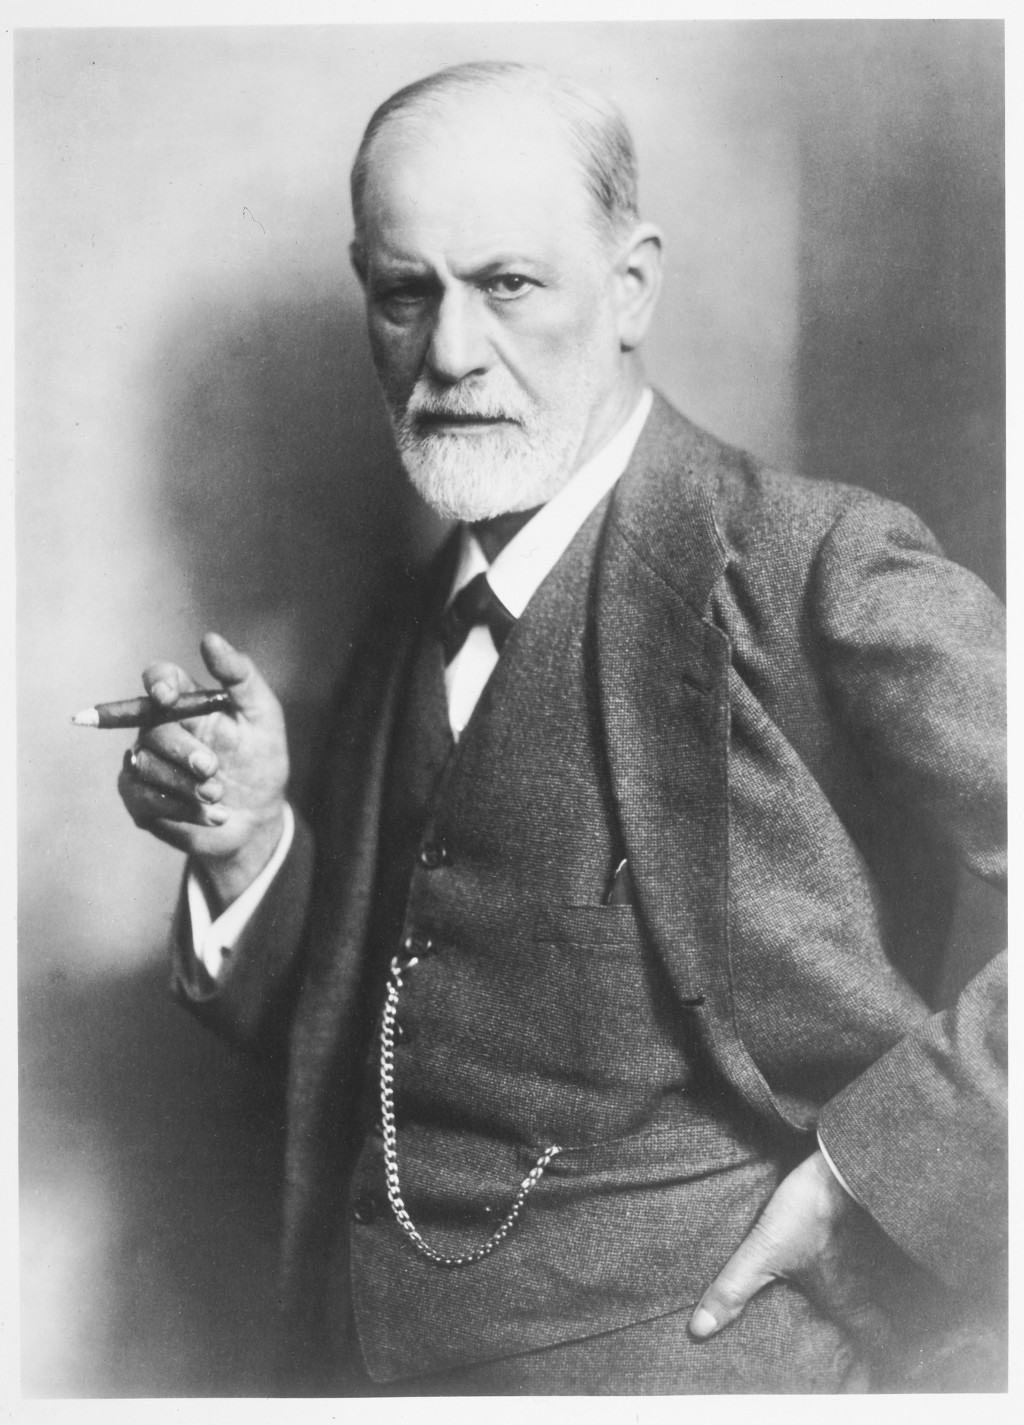 Portrait of Sigmund Freud. [LCID: 71523]